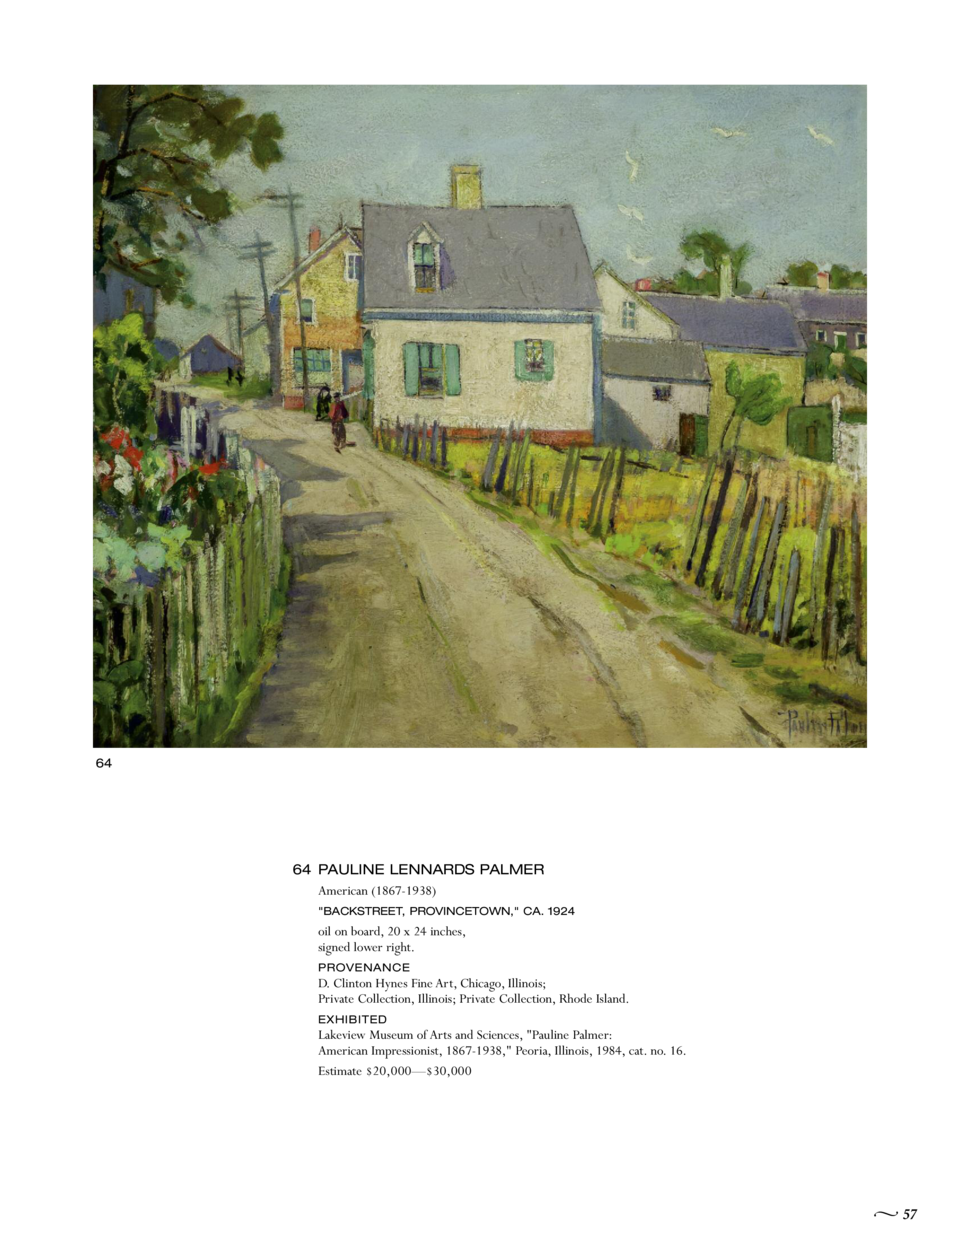 64  64 PAULINE LENNARDS PALMER American  1867-1938   BACKSTREET, PROVINCETOWN,  CA. 1924  oil on board, 20 x 24 inches, si...